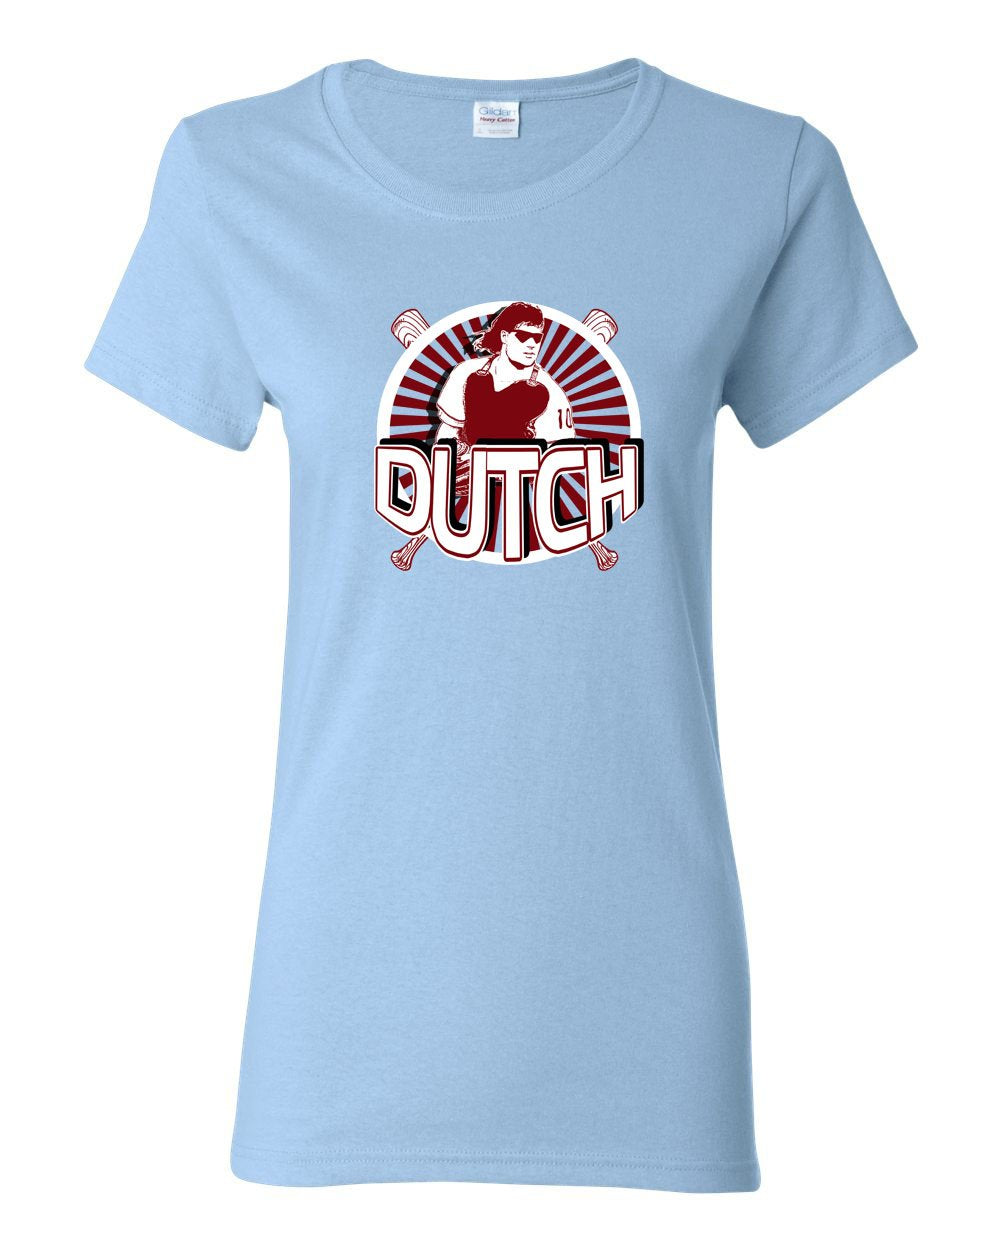 Dutch LADIES Missy-Fit T-Shirt